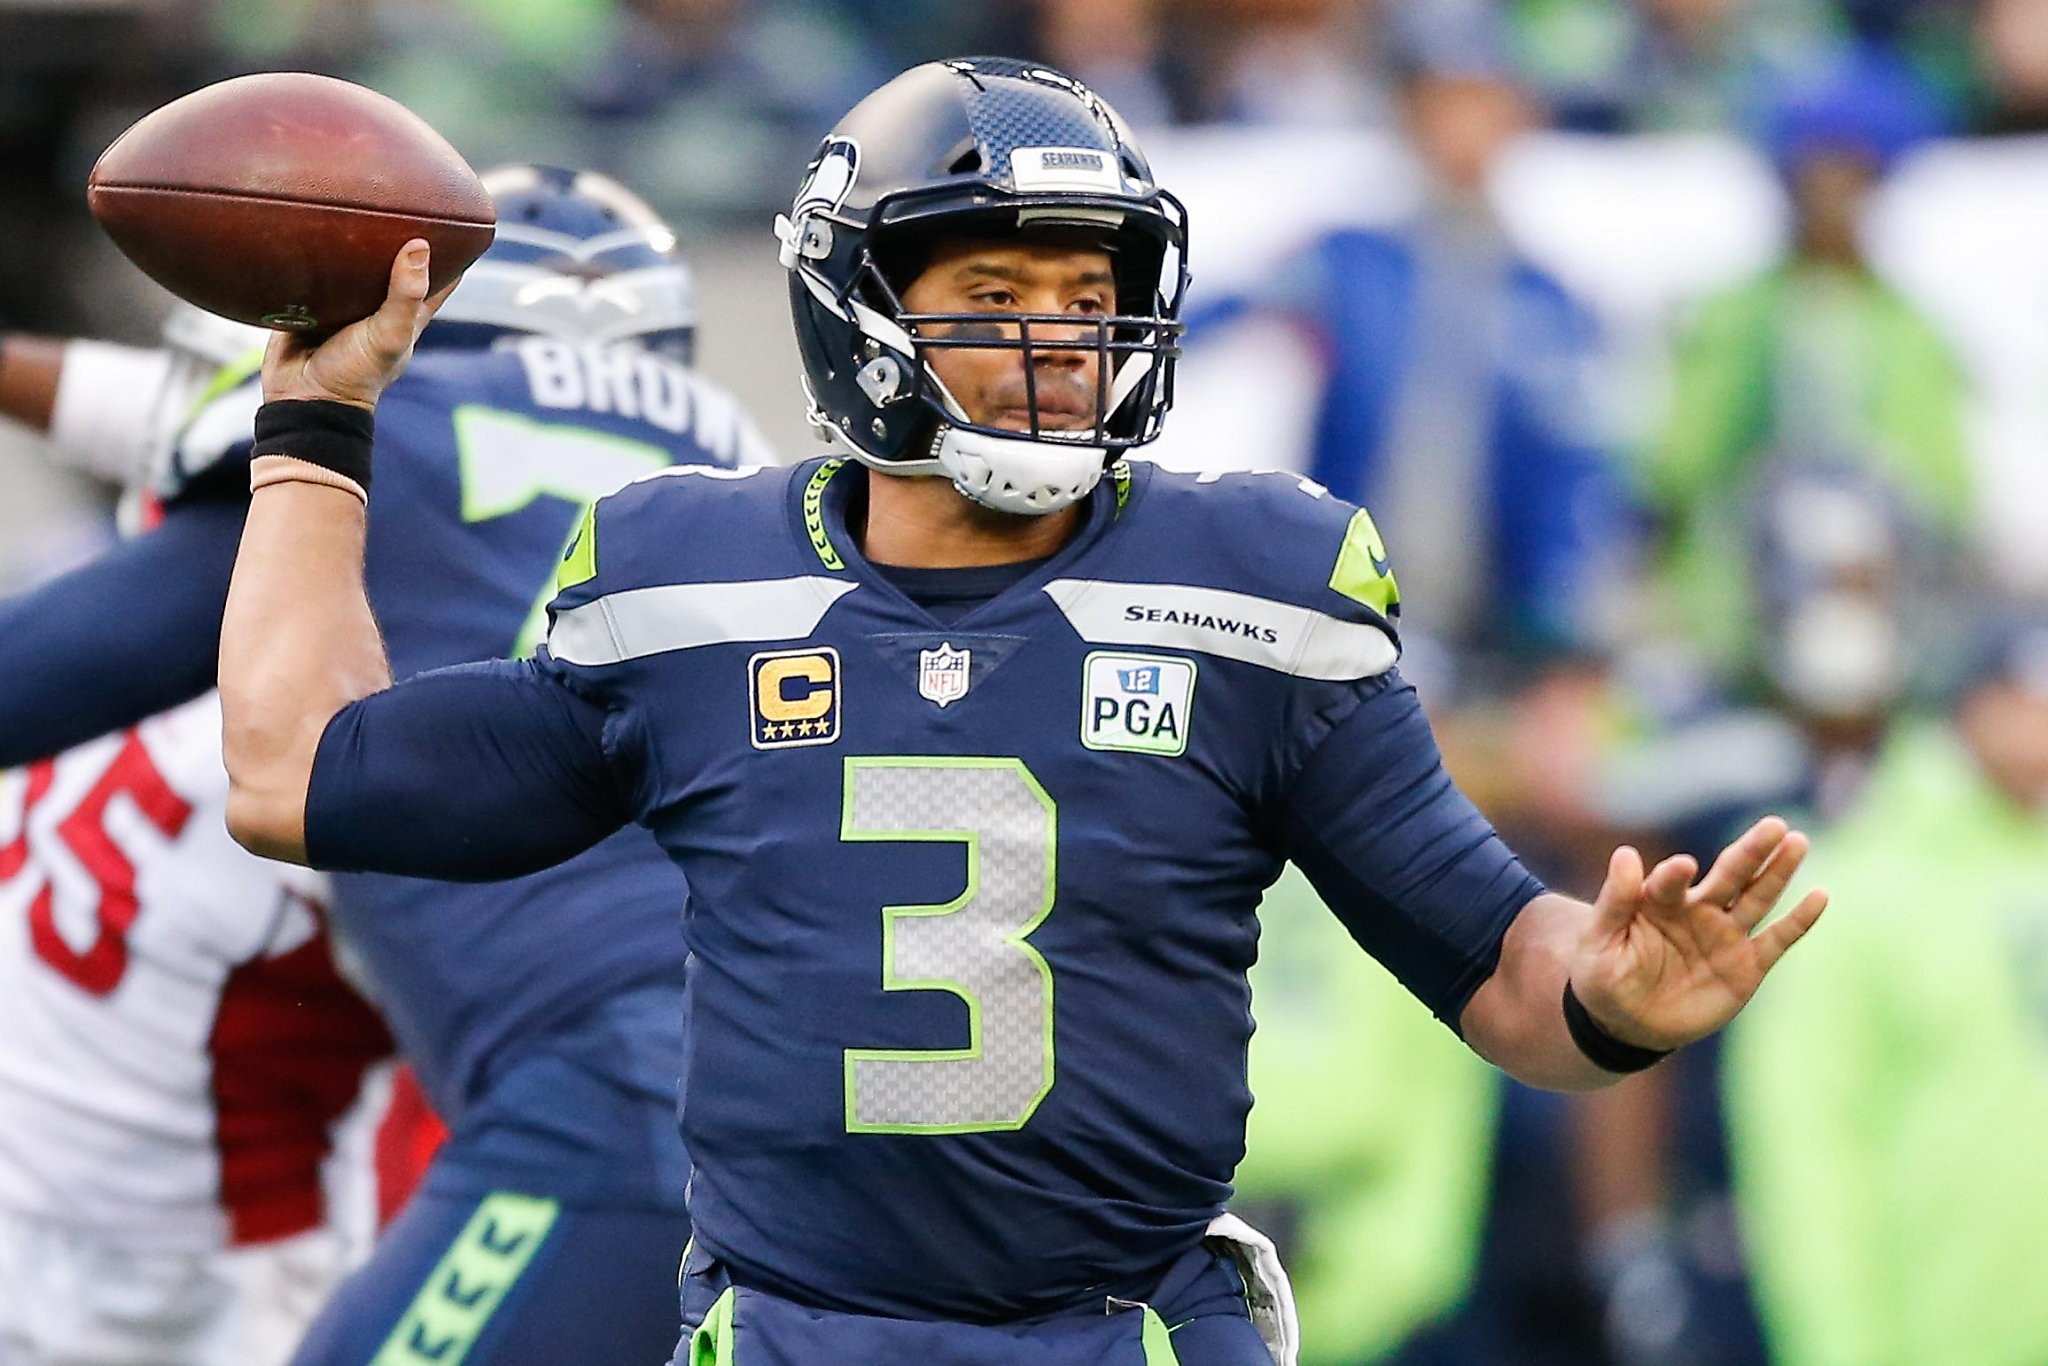 National NFL writer says Seahawks QB Russell Wilson can win MVP in 2019